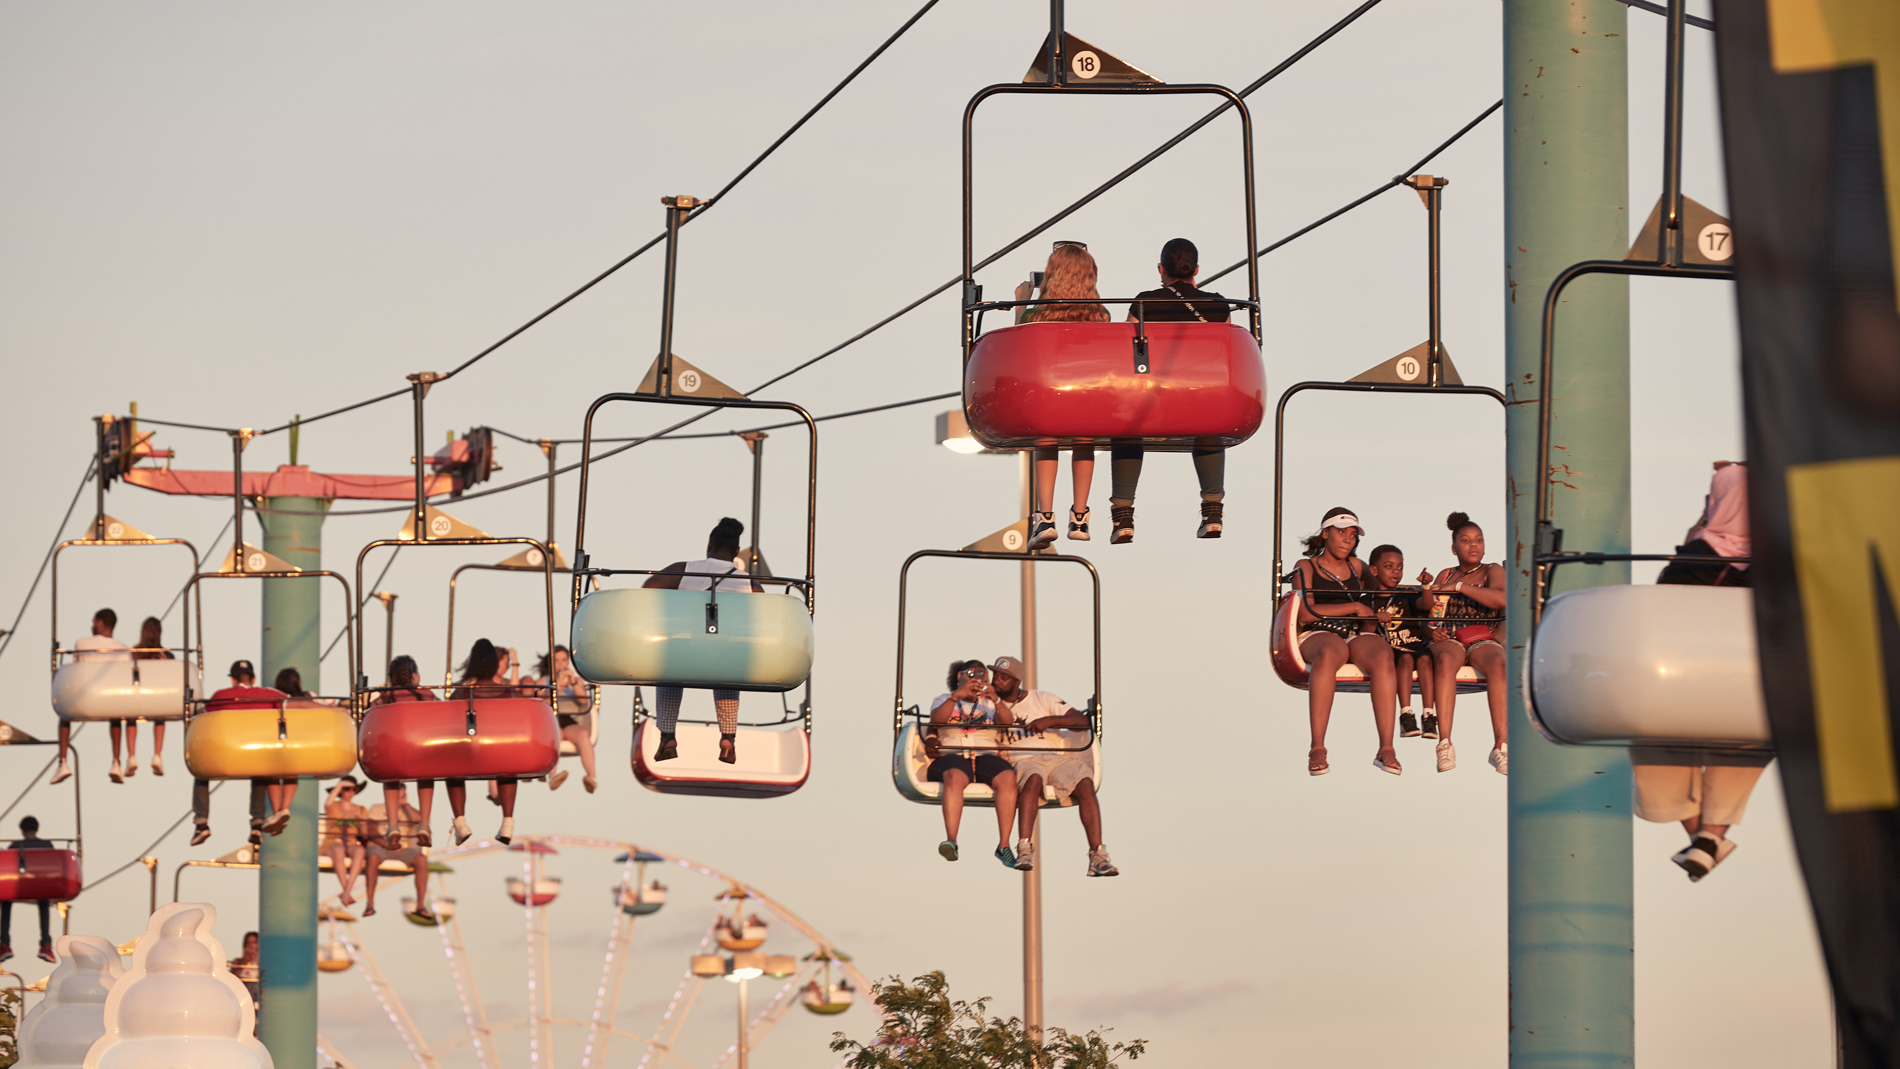 ODE_TO_SUMMER_STATE_FAIR_NEW_JERSEY_USA